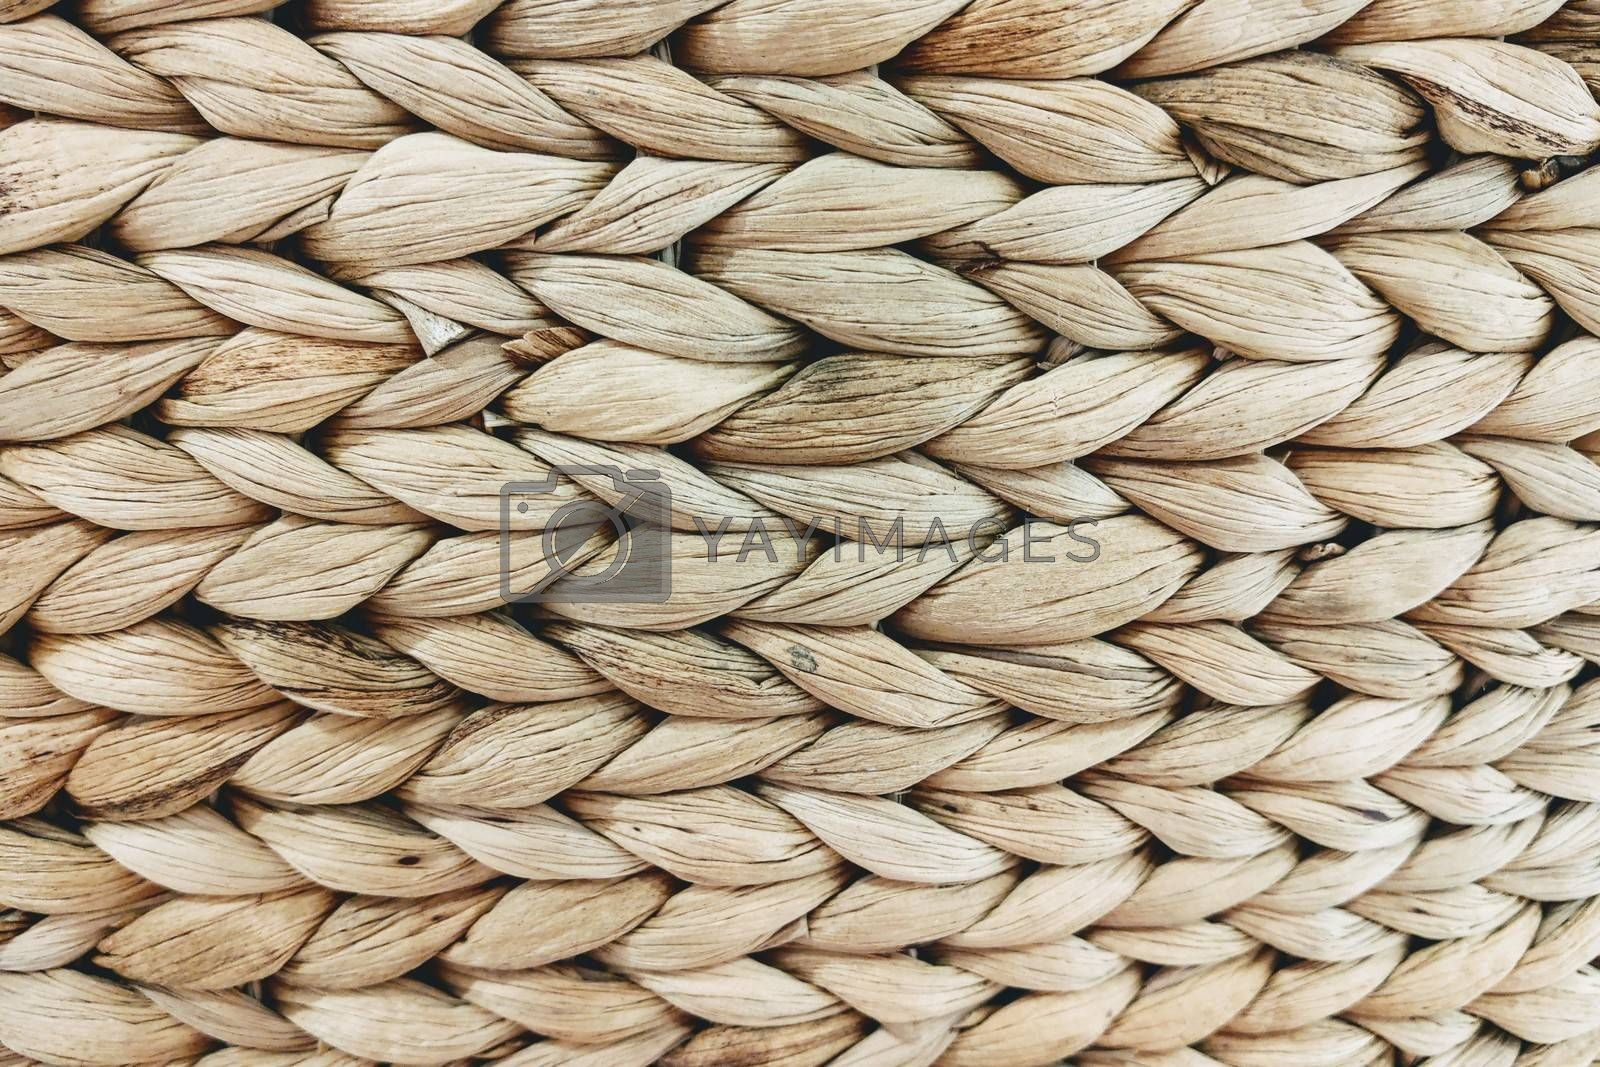 Royalty free image of Abstract decorative wooden textured basket weaving background. by kip02kas